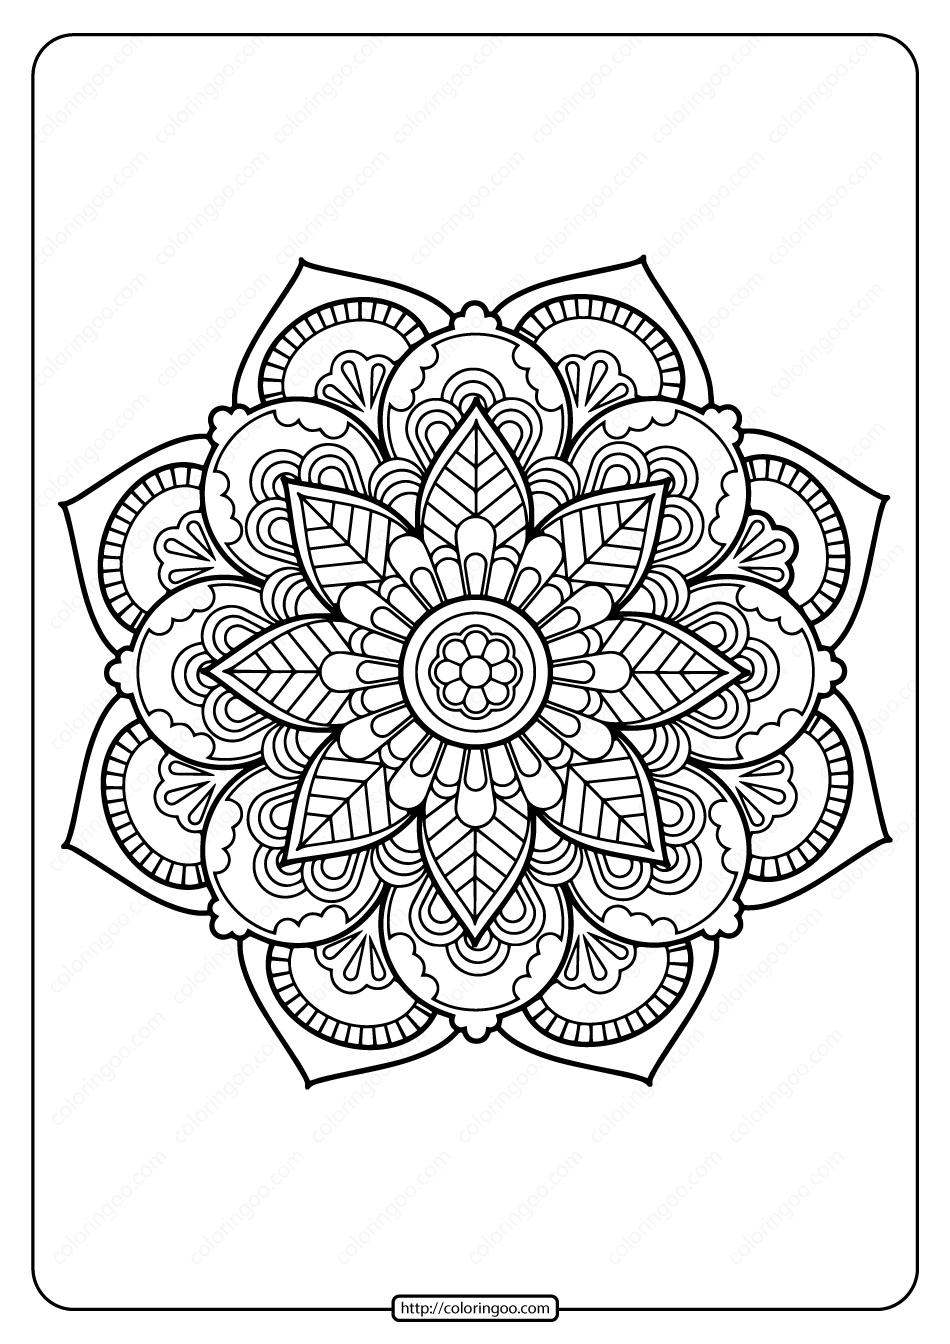 Printable PDF Coloring Book Pages for Adults 028